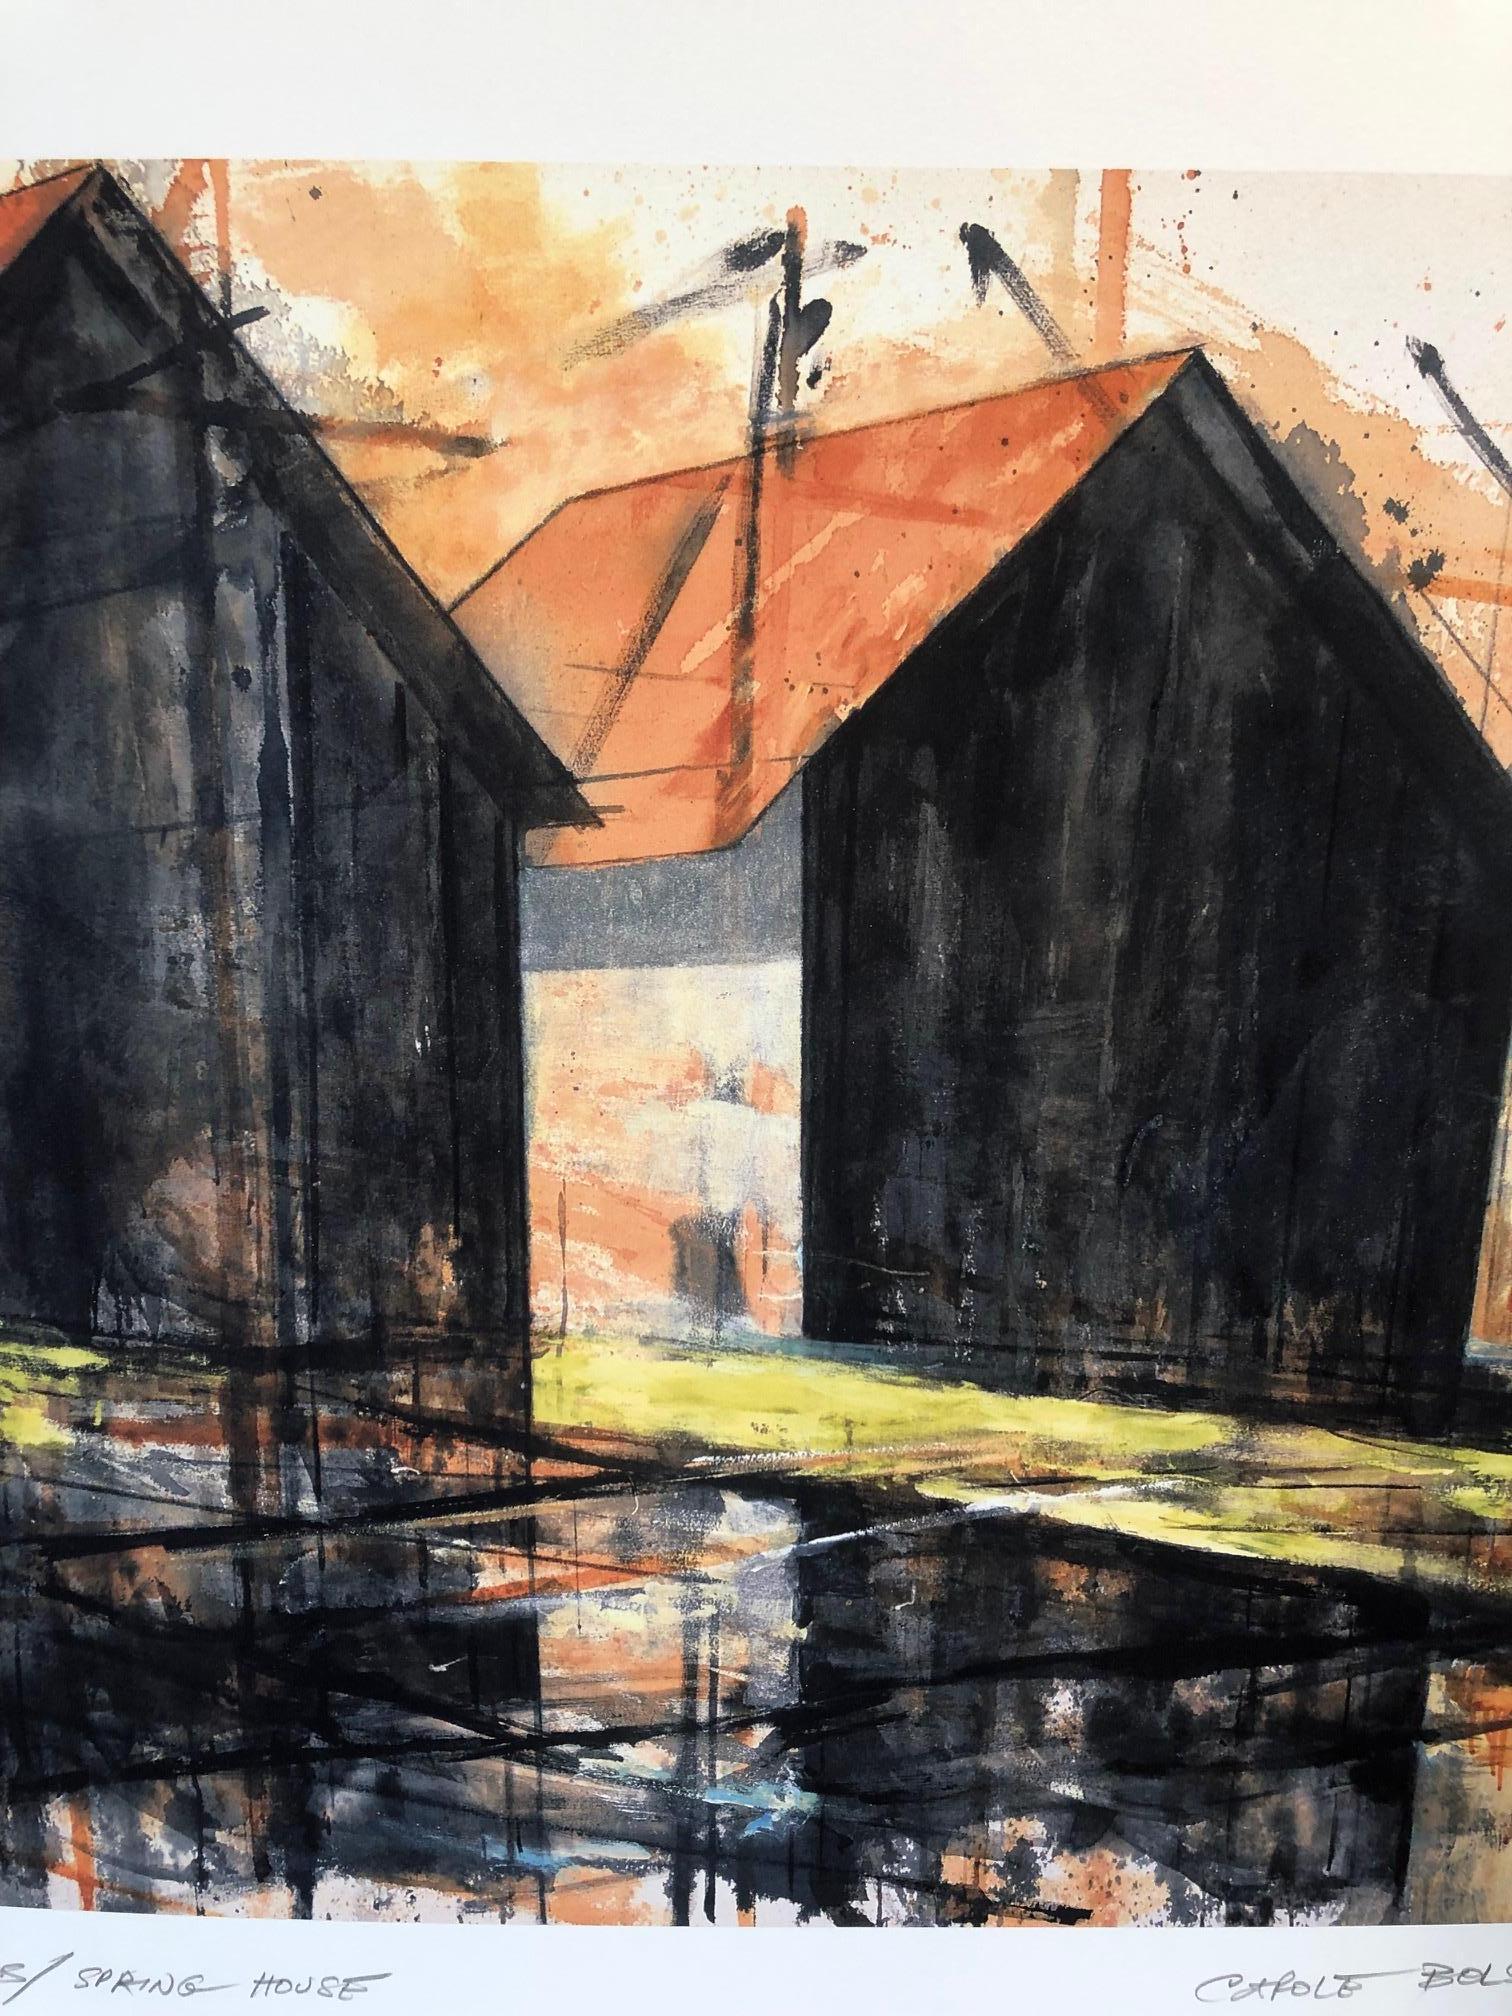 """""""Waterfields Springhouse"""" Architectural painting of two barns in warm colors"""